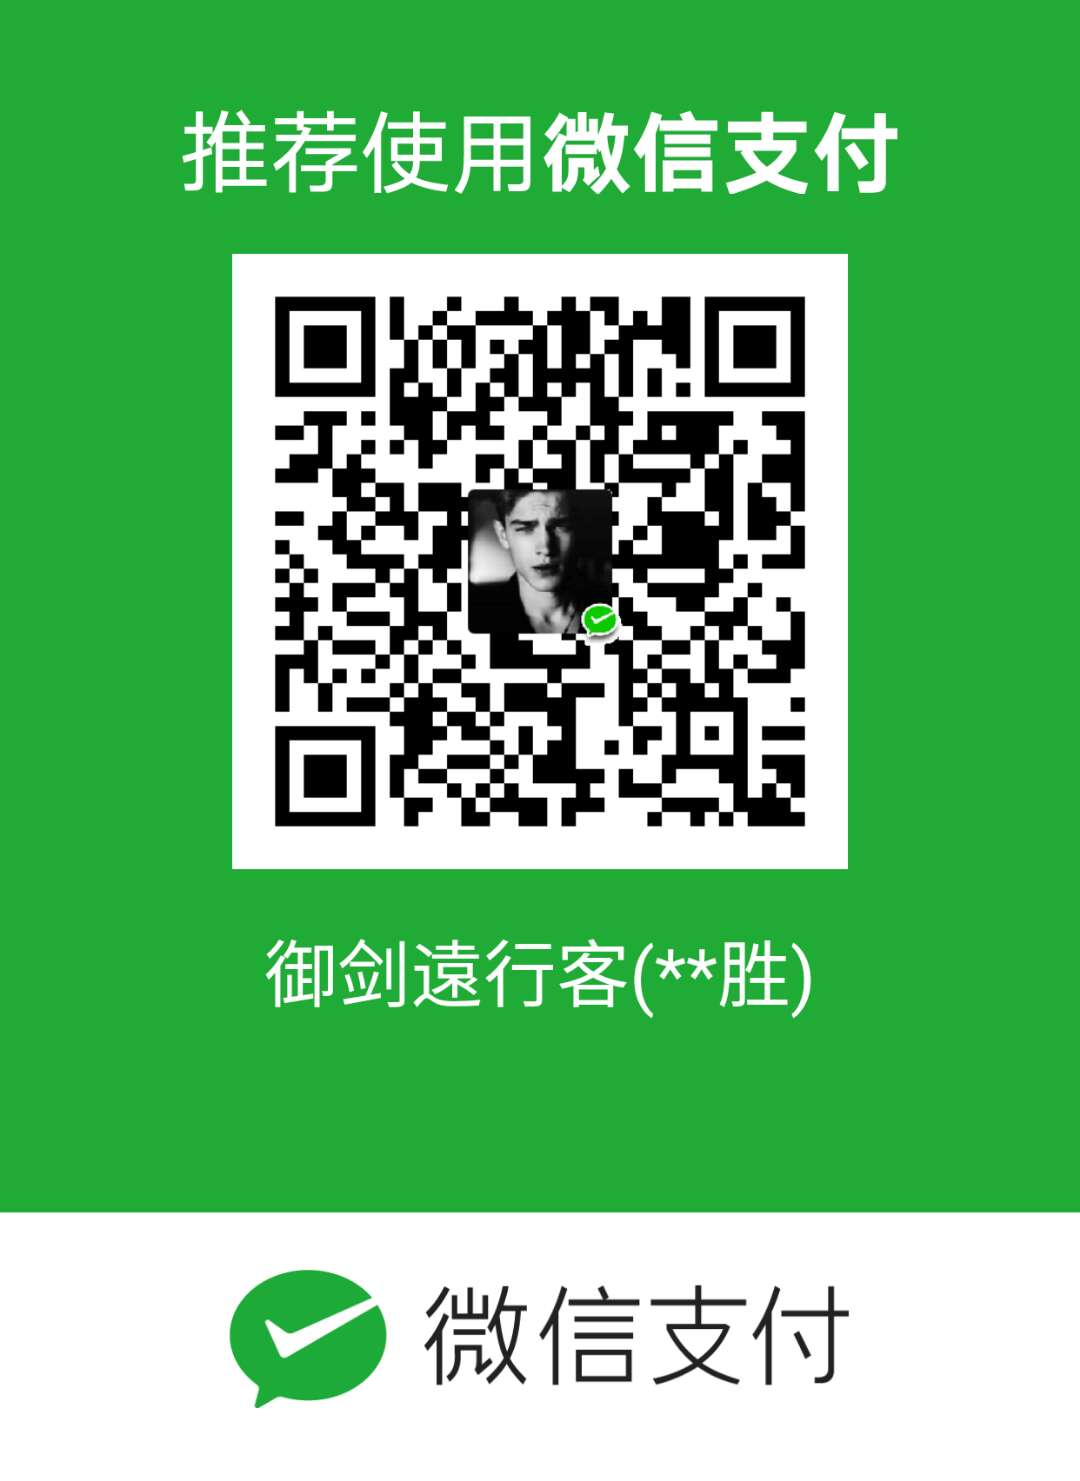 DongSheng WeChat Pay